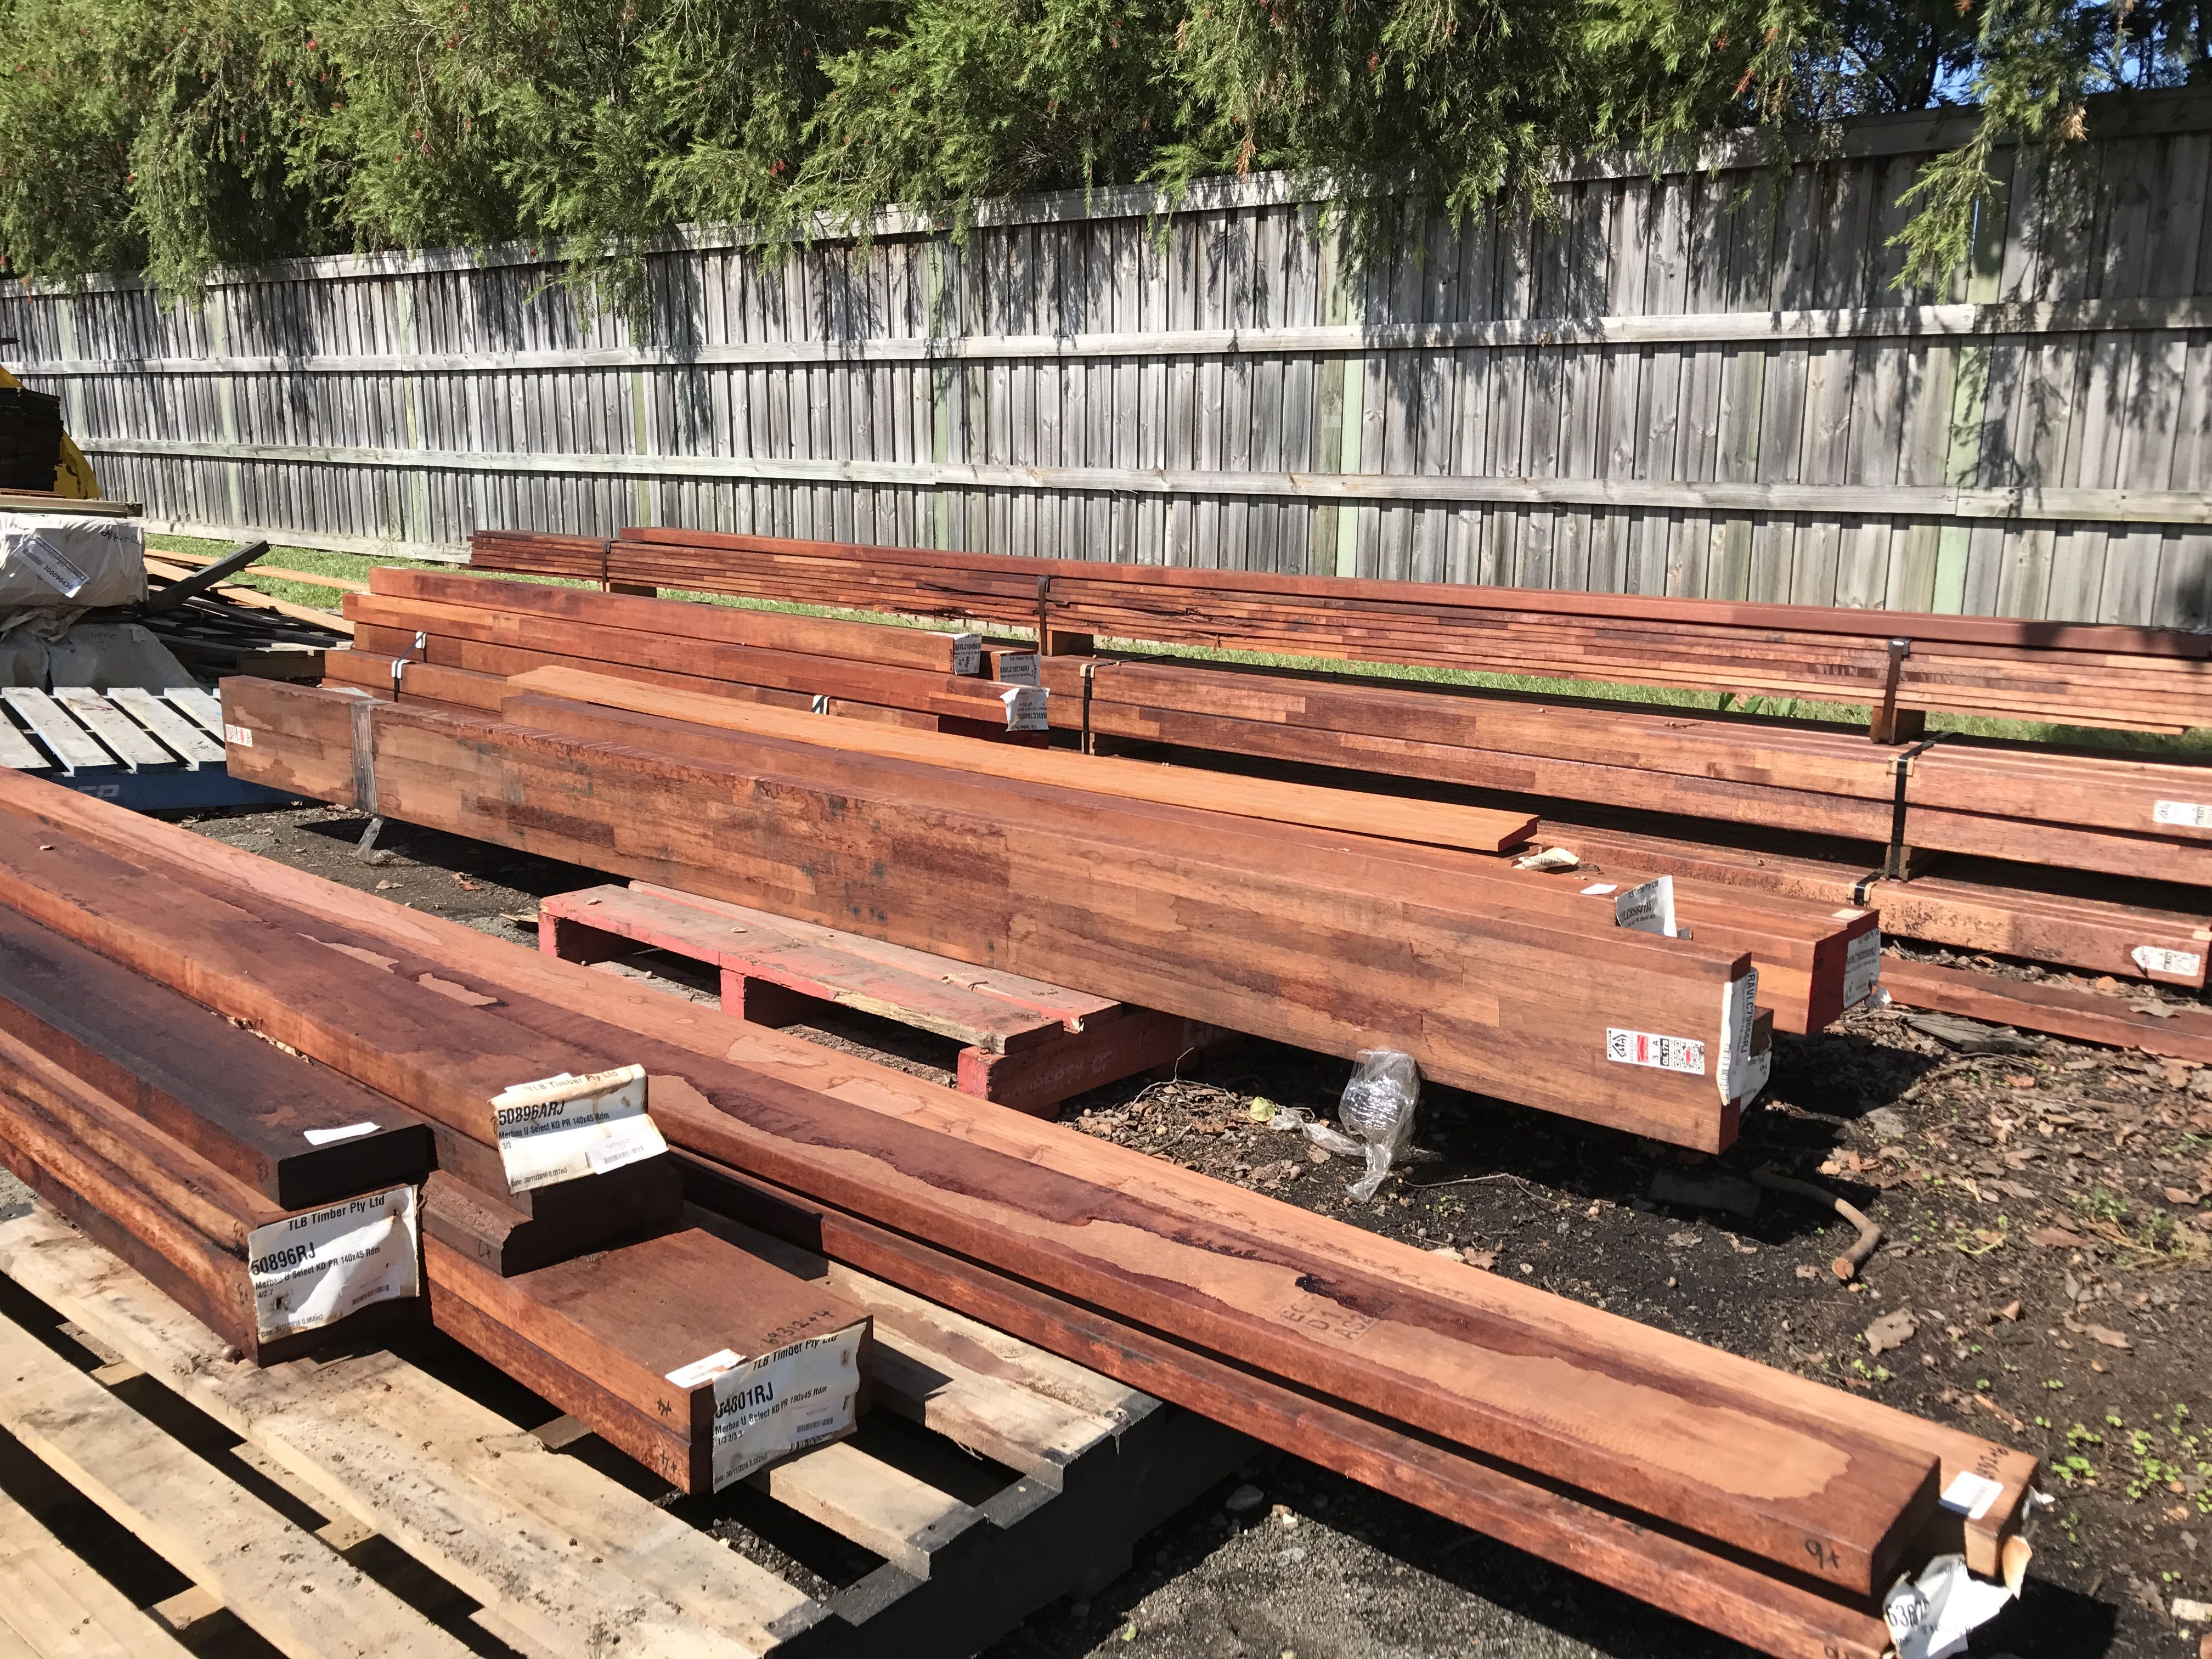 Landscaping Auction To Be Published Soon Keep An Eye Out For These Beautiful Timbers Going Under The Hammer British Paints Timber Landscape